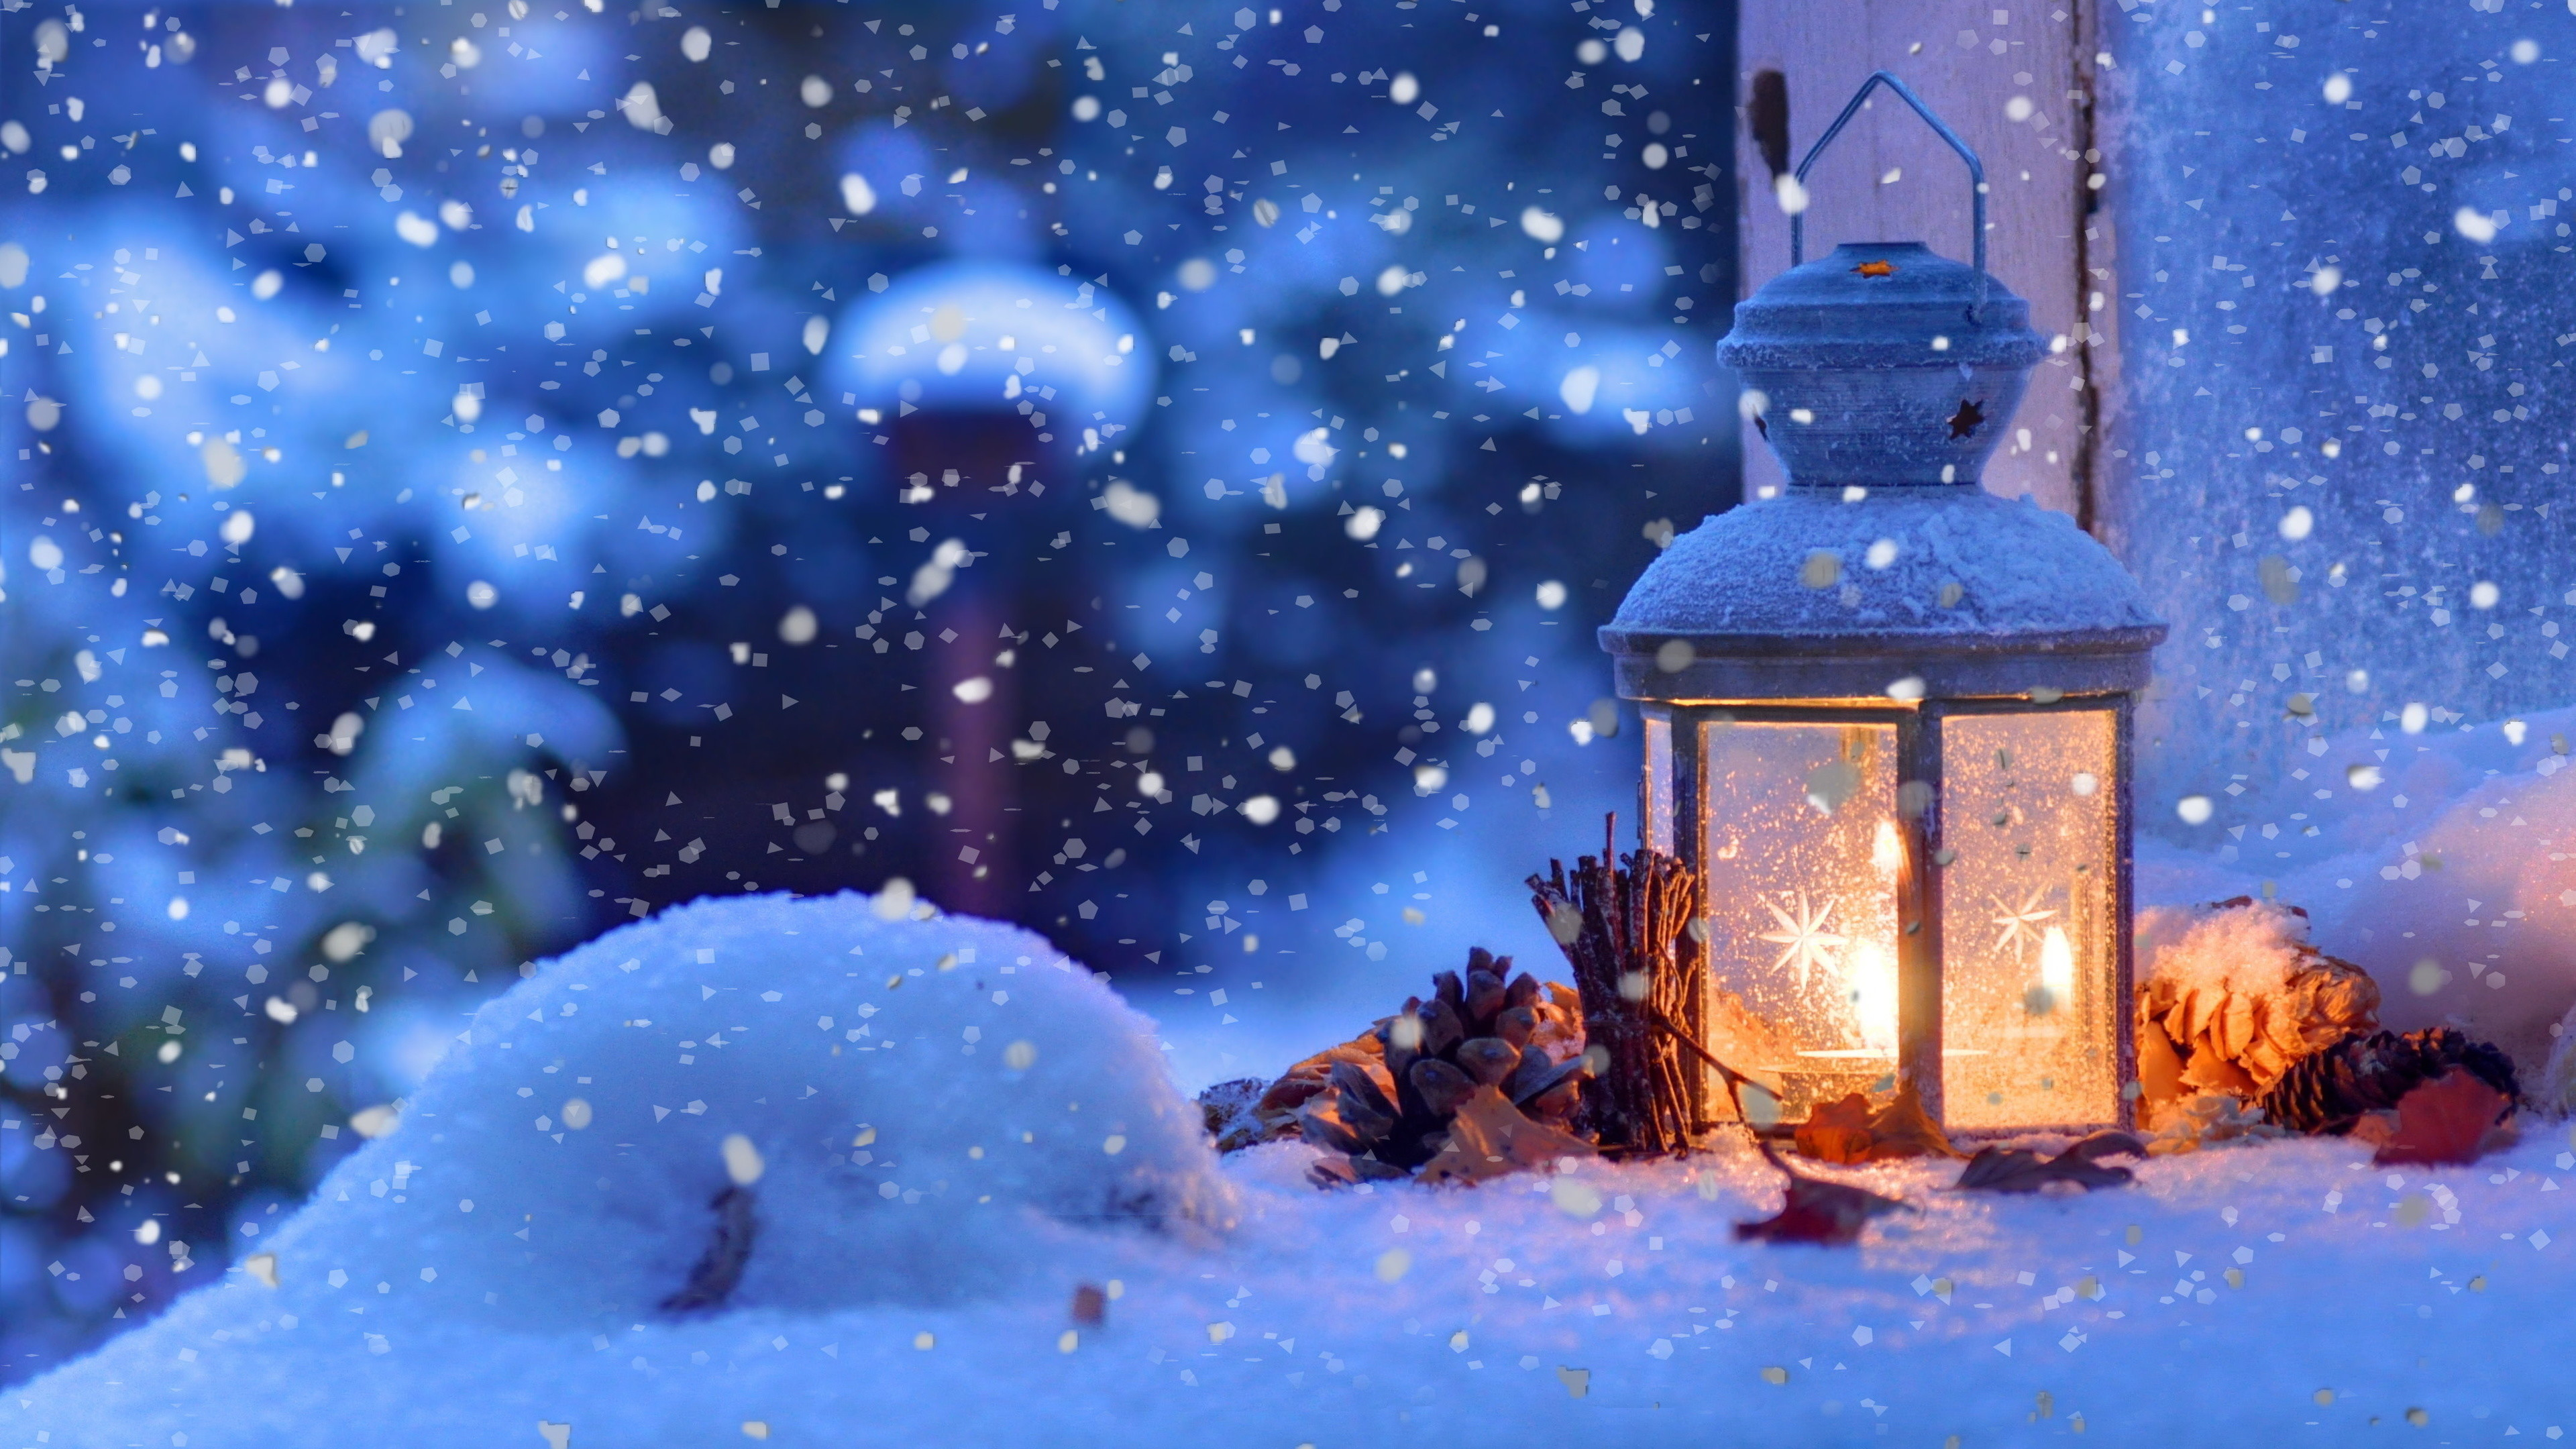 Warm candle in a cold winter night   HD wallpaper 3840x2160